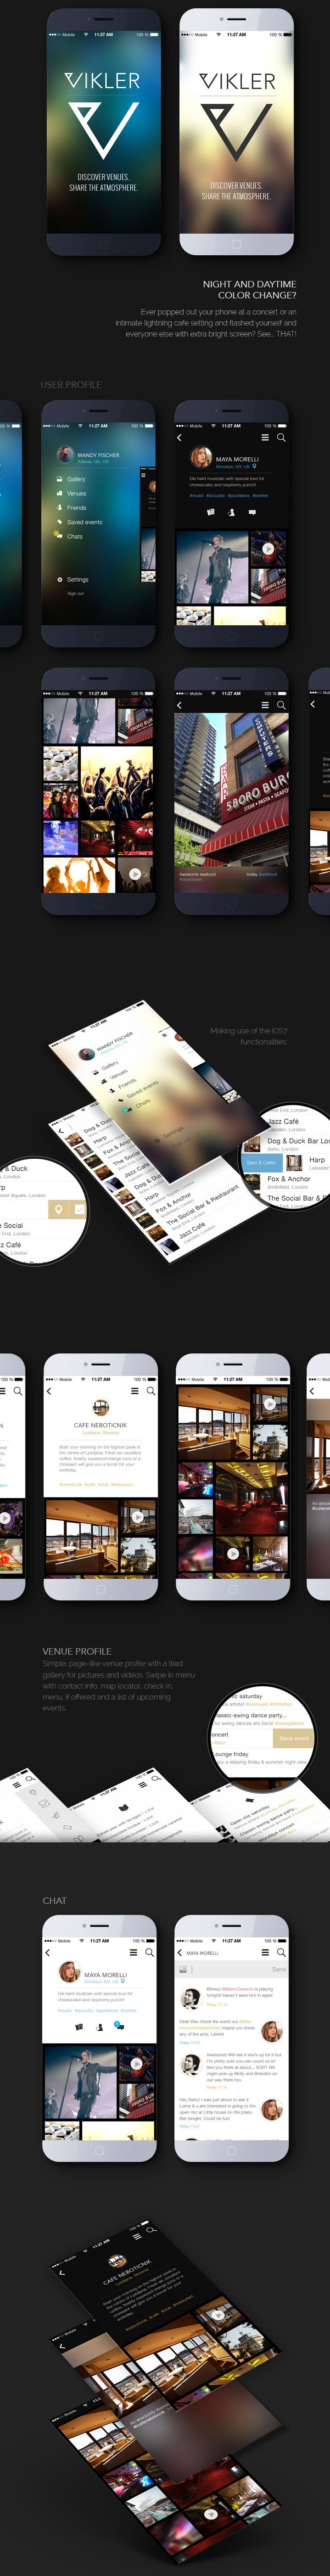 Daily Mobile UI Design Inspiration #185